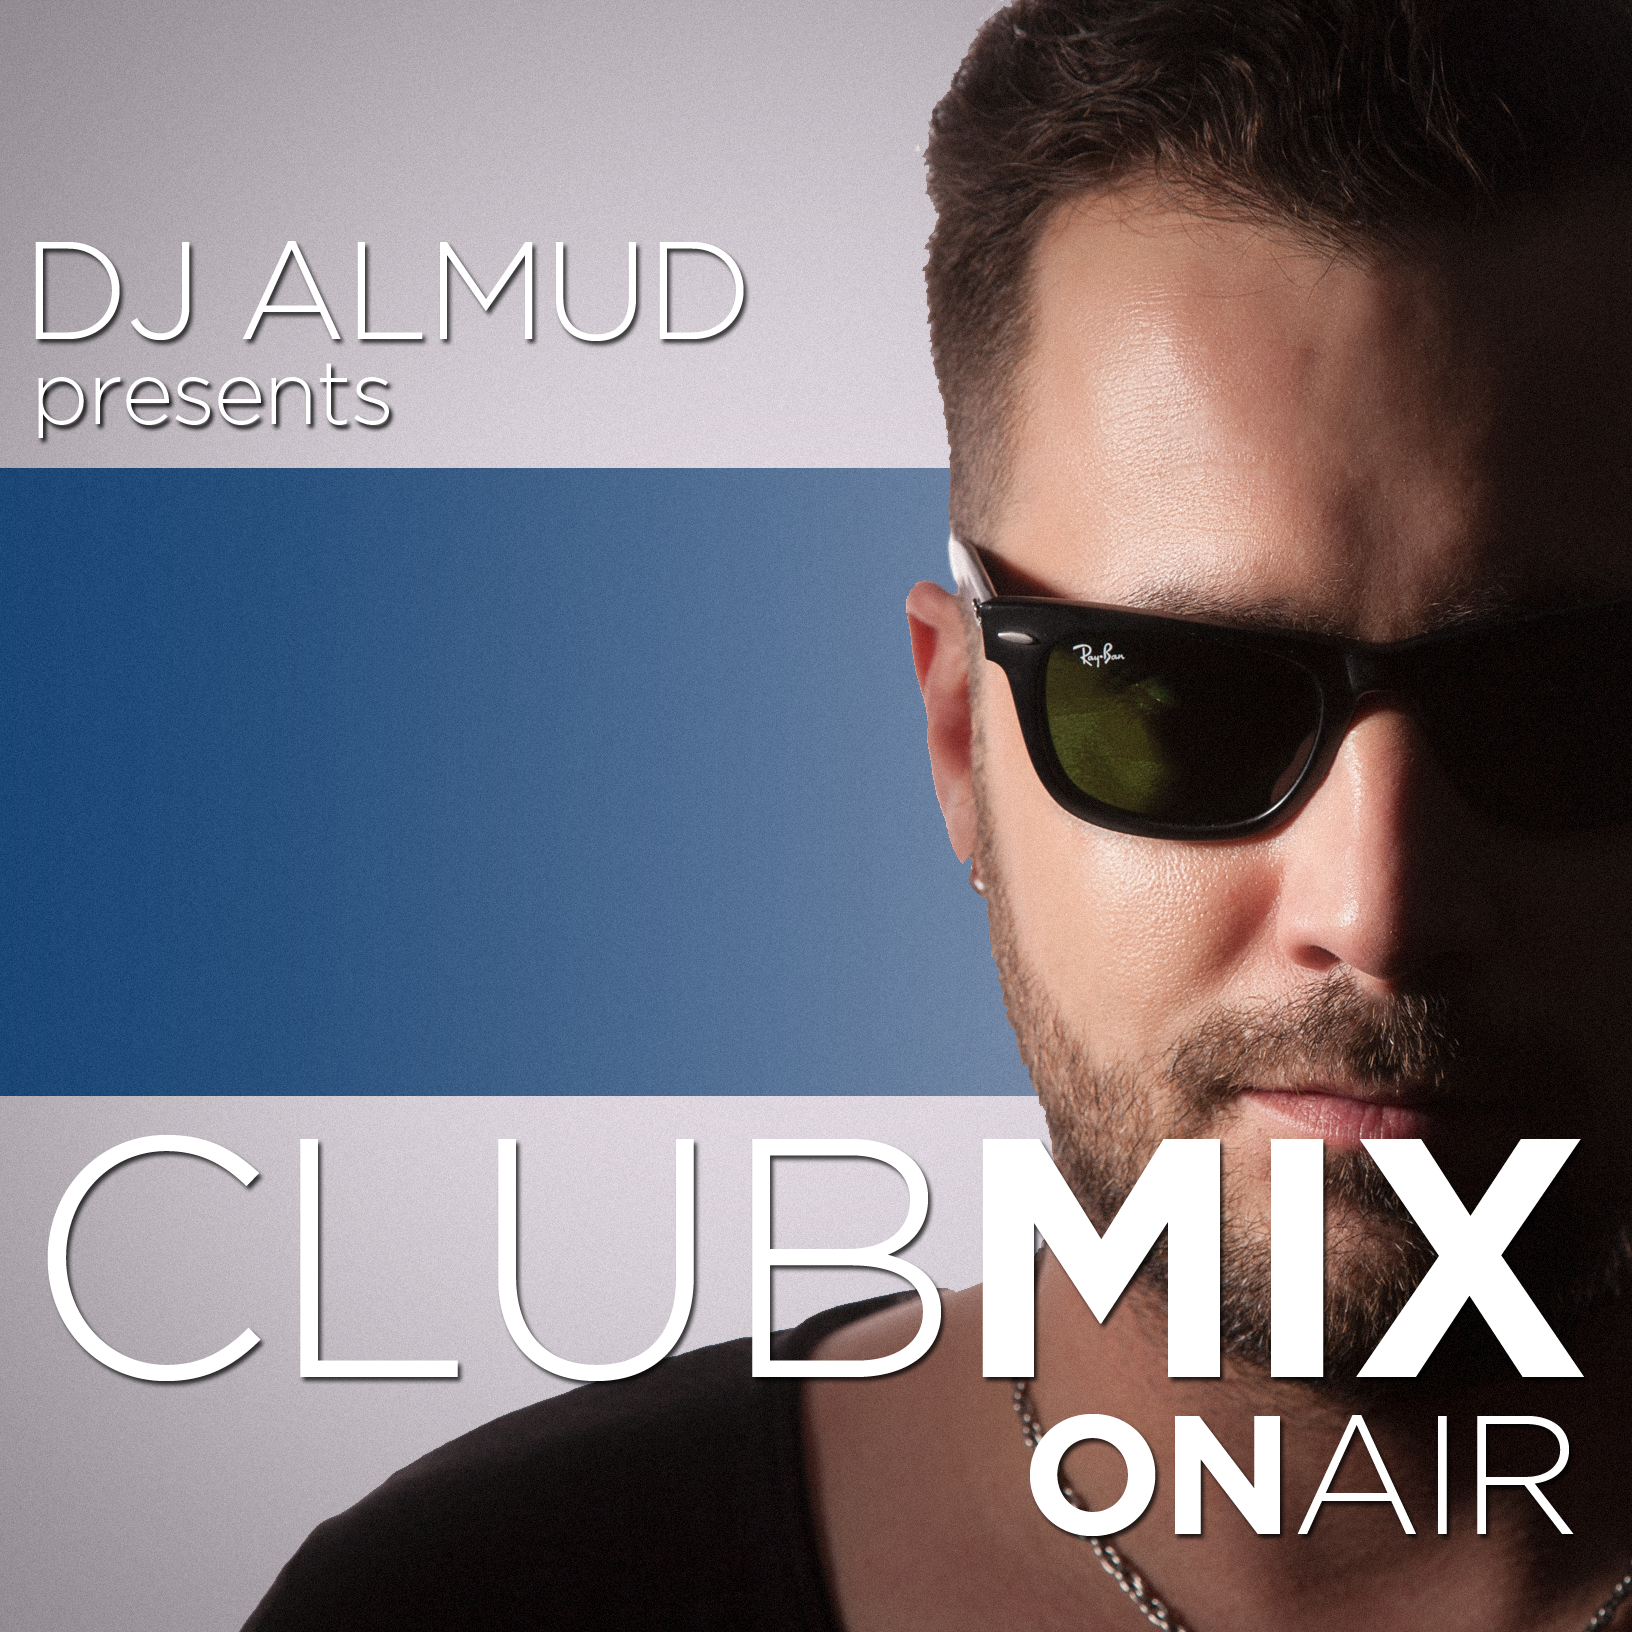 Almud presents Clubmix ON AIR